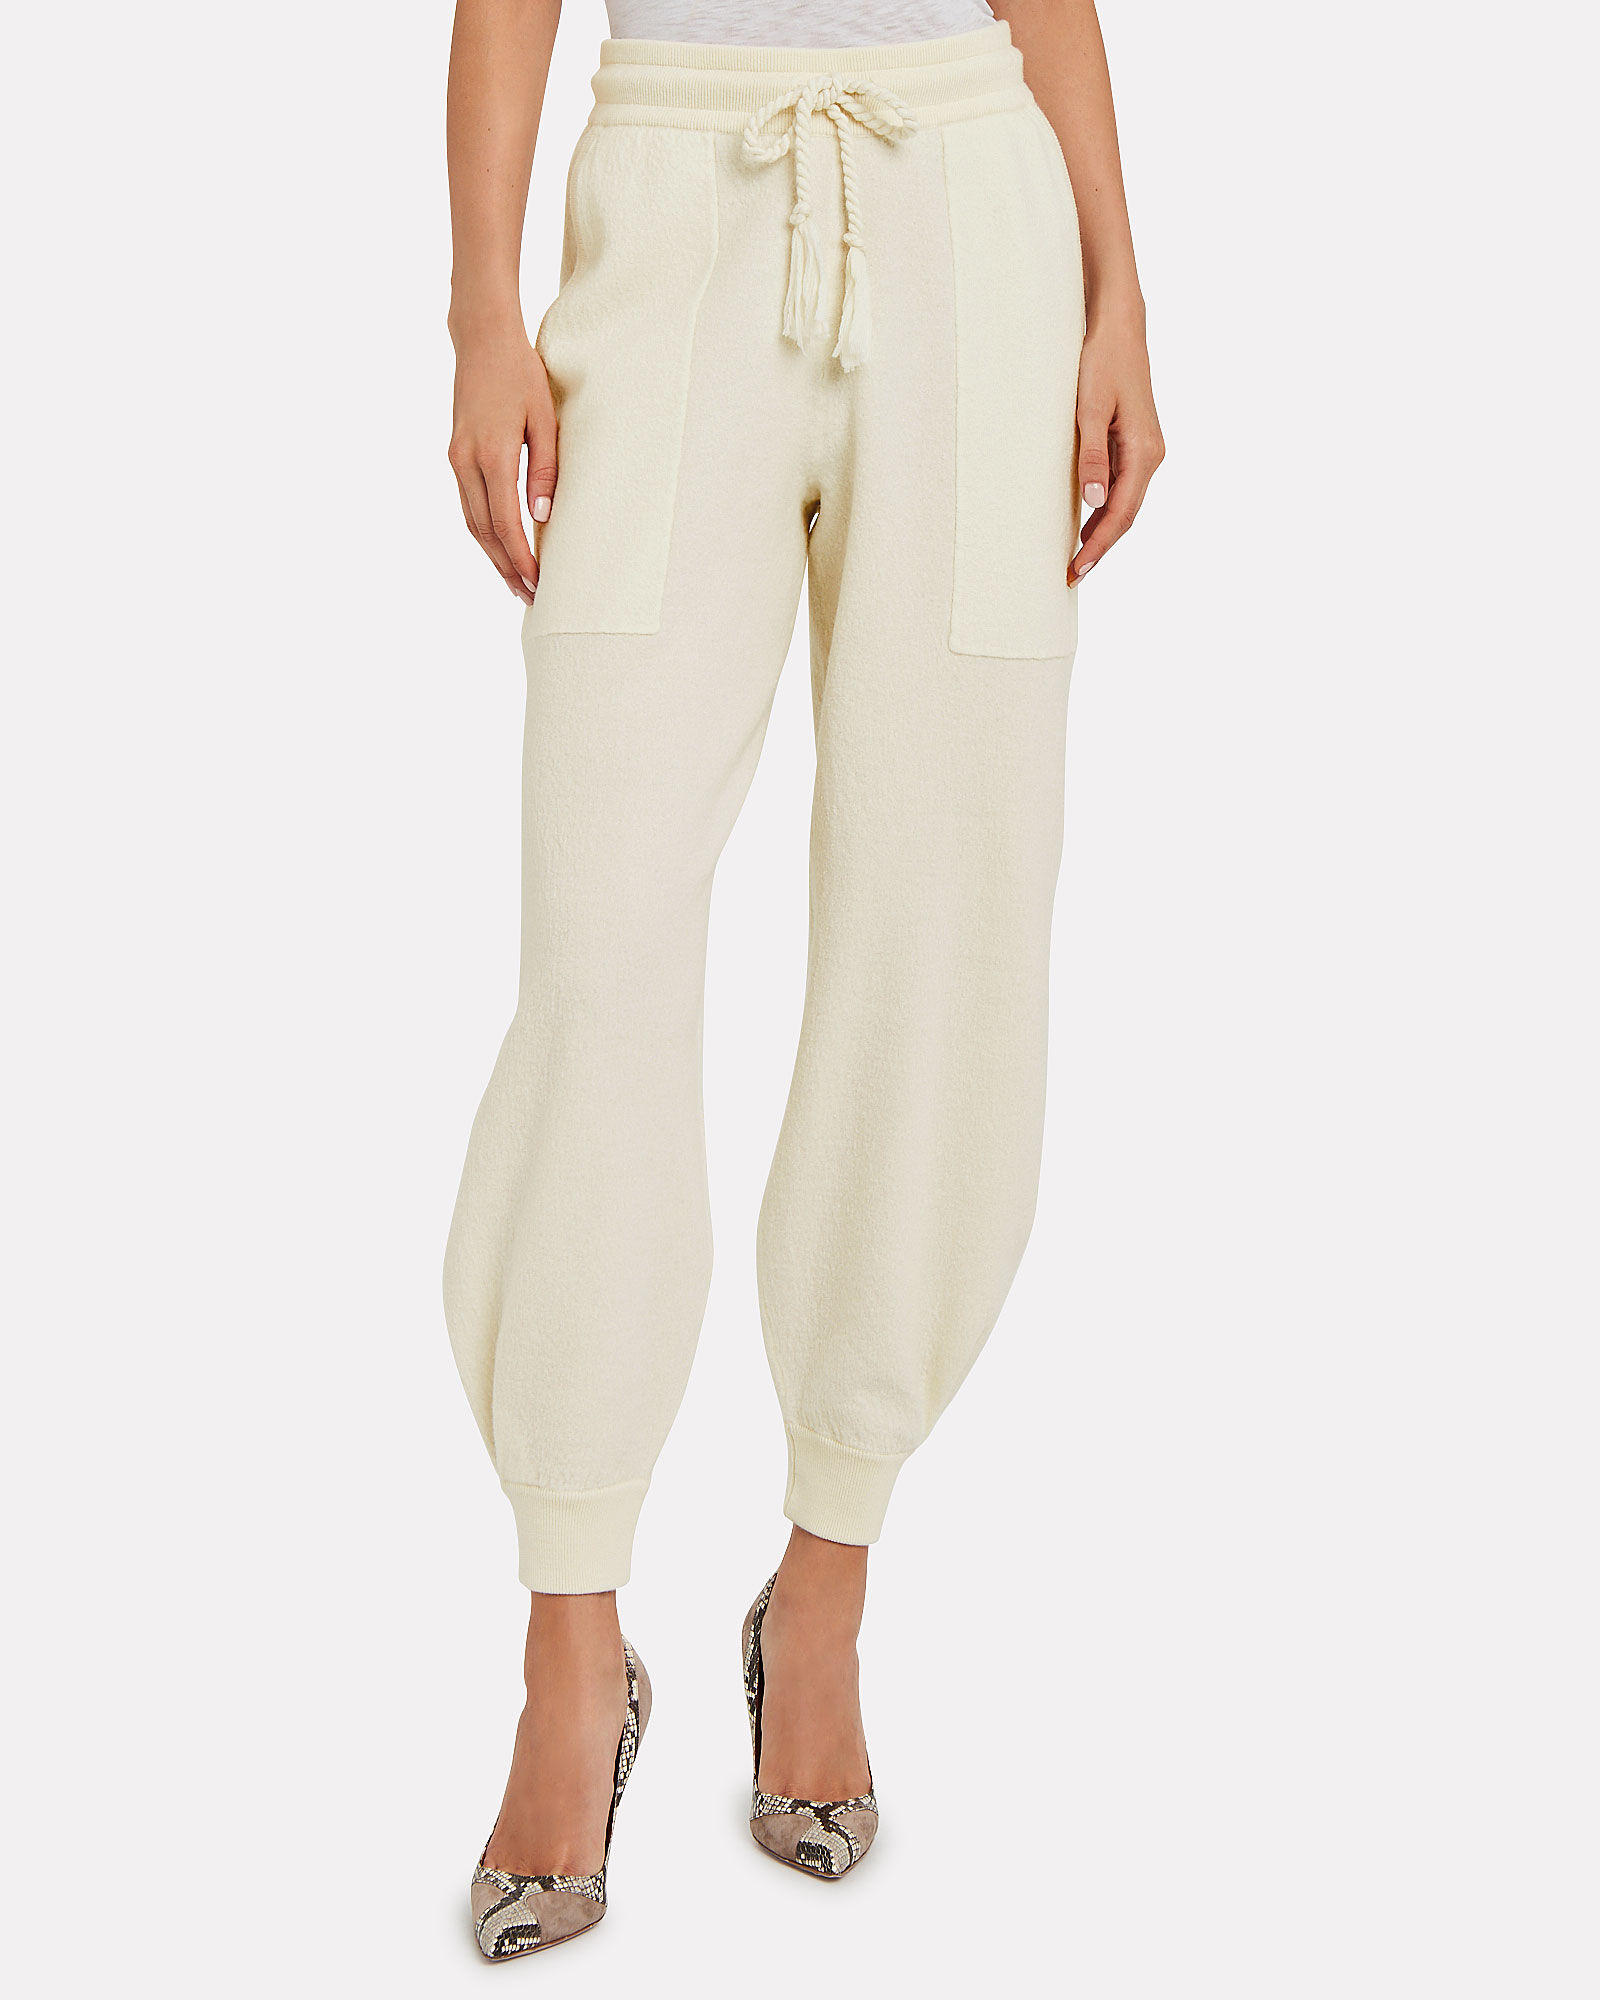 Morgana Merino Wool Sweatpants, WHITE, hi-res